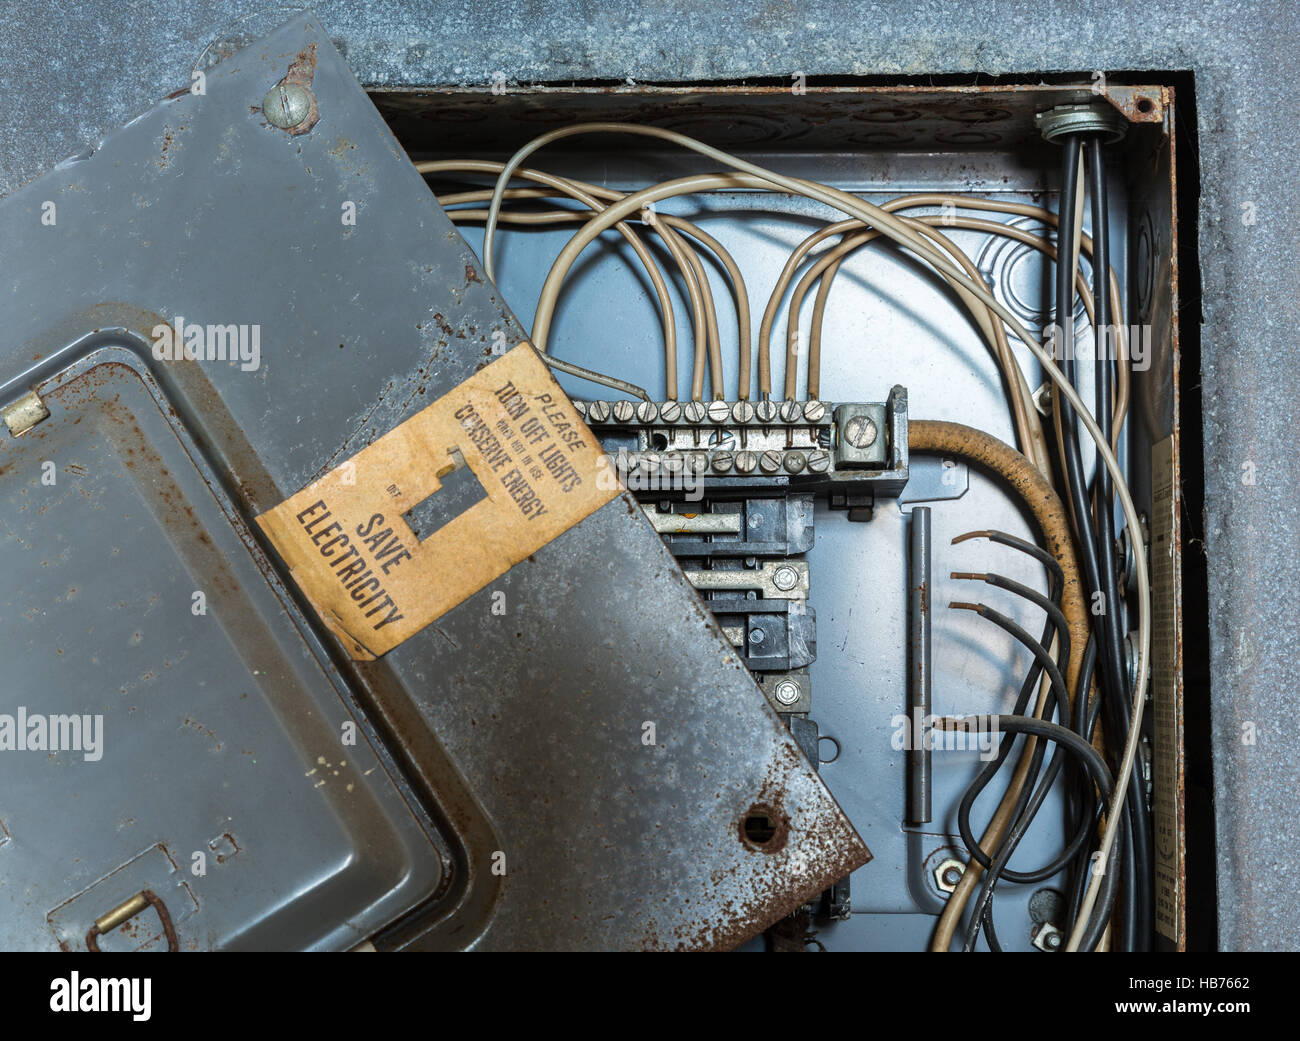 Old electrical distribution or wiring box Stock Photo: 127392330 - Alamy